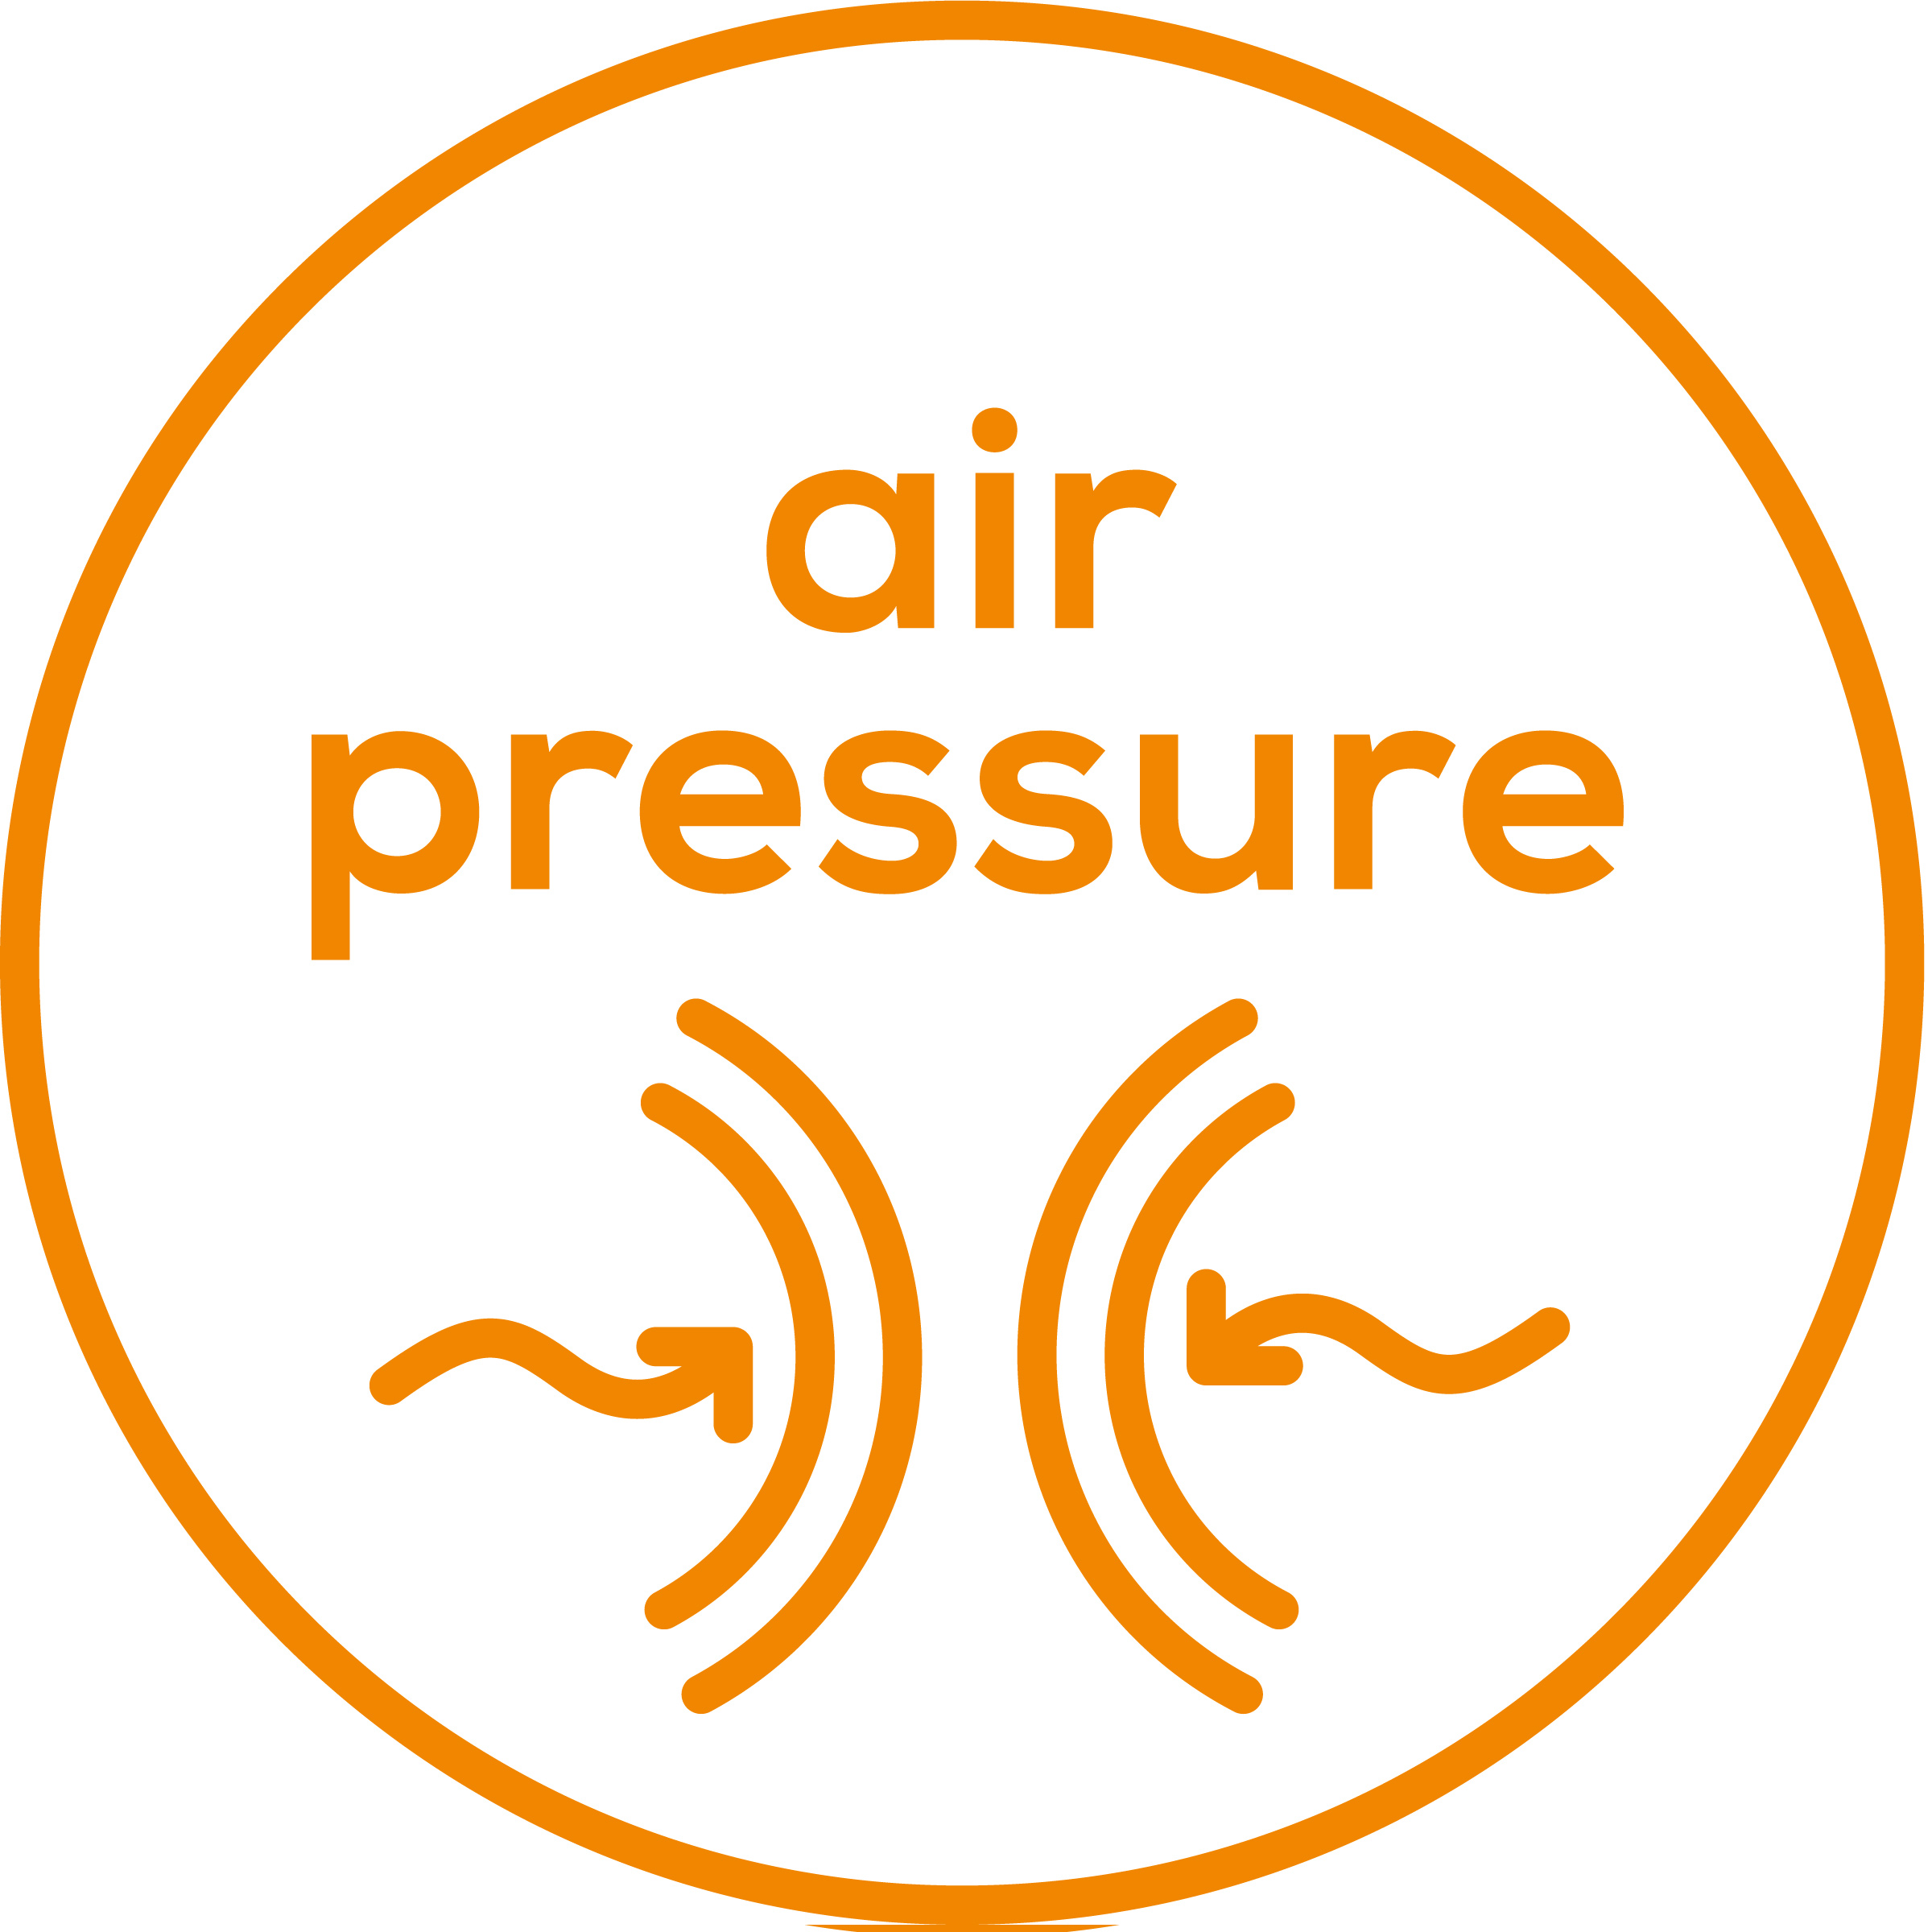 Air pressure Air pressure massage with inflating and deflating air cushions